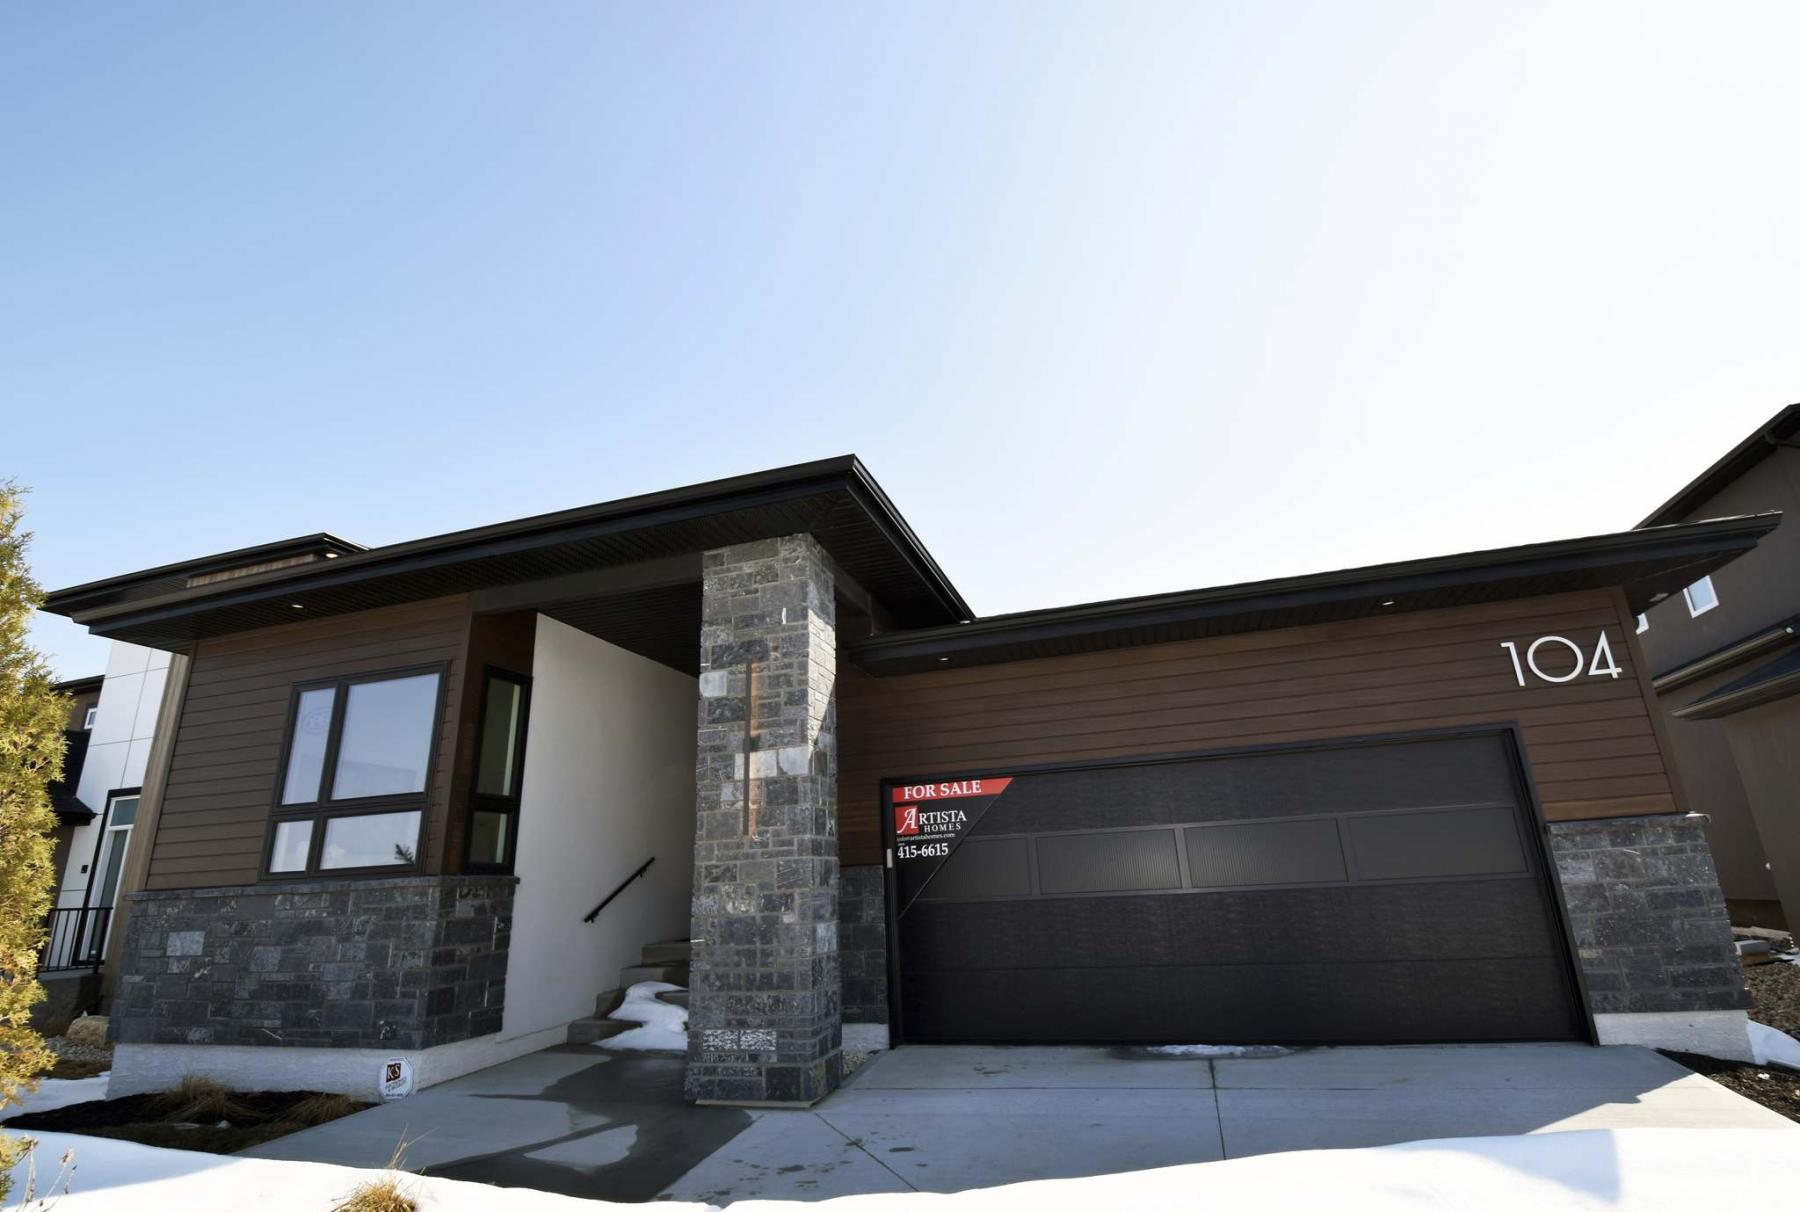 <p>Photos by Todd Lewys / Winnipeg Free Press</p><p>A simple, classy exterior is a prelude to this spacious bungalow&rsquo;s simple yet spectacular interior.</p>